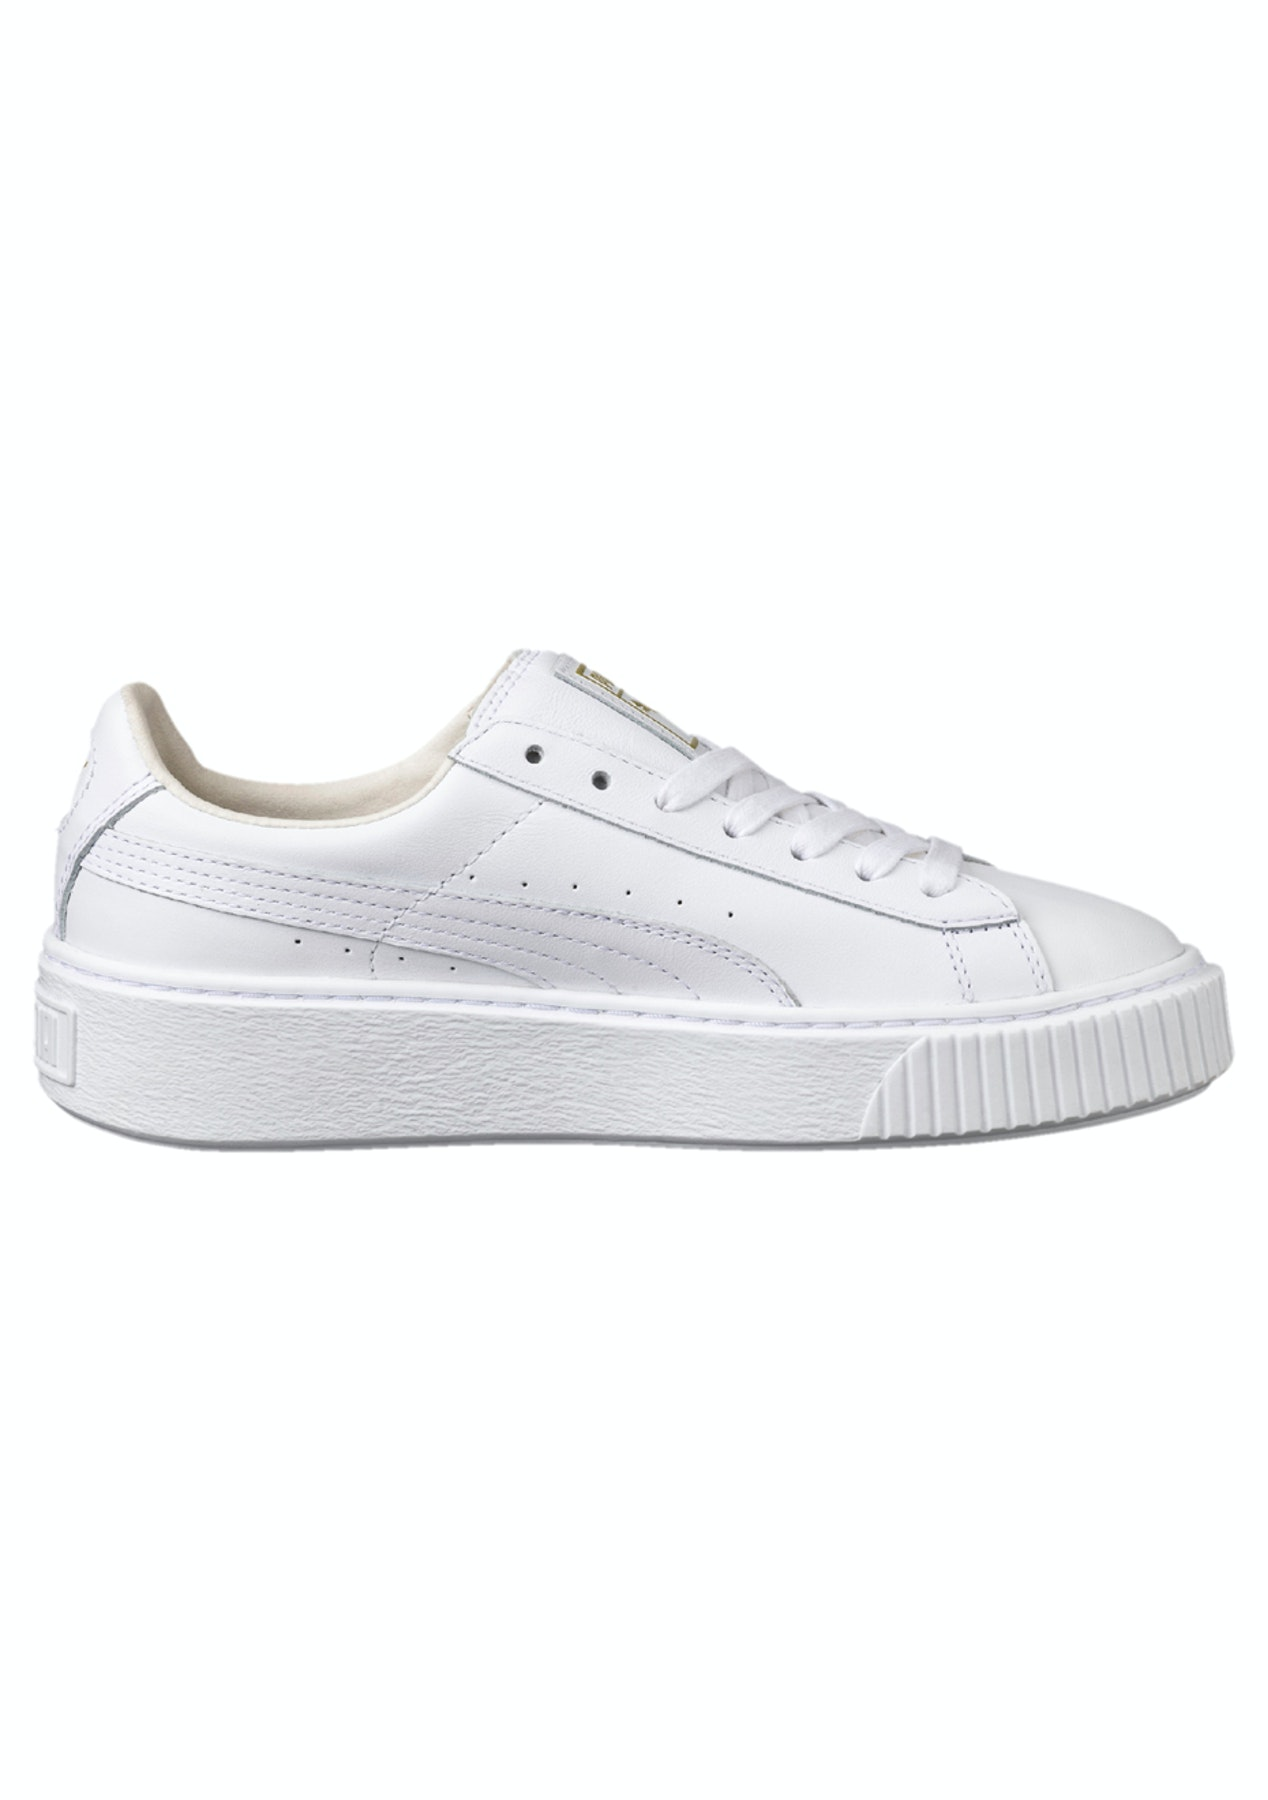 58fff559316f Puma Womens - Basket Platform Core White - Gold - Under  100 PUMA Mega Sale  - Onceit